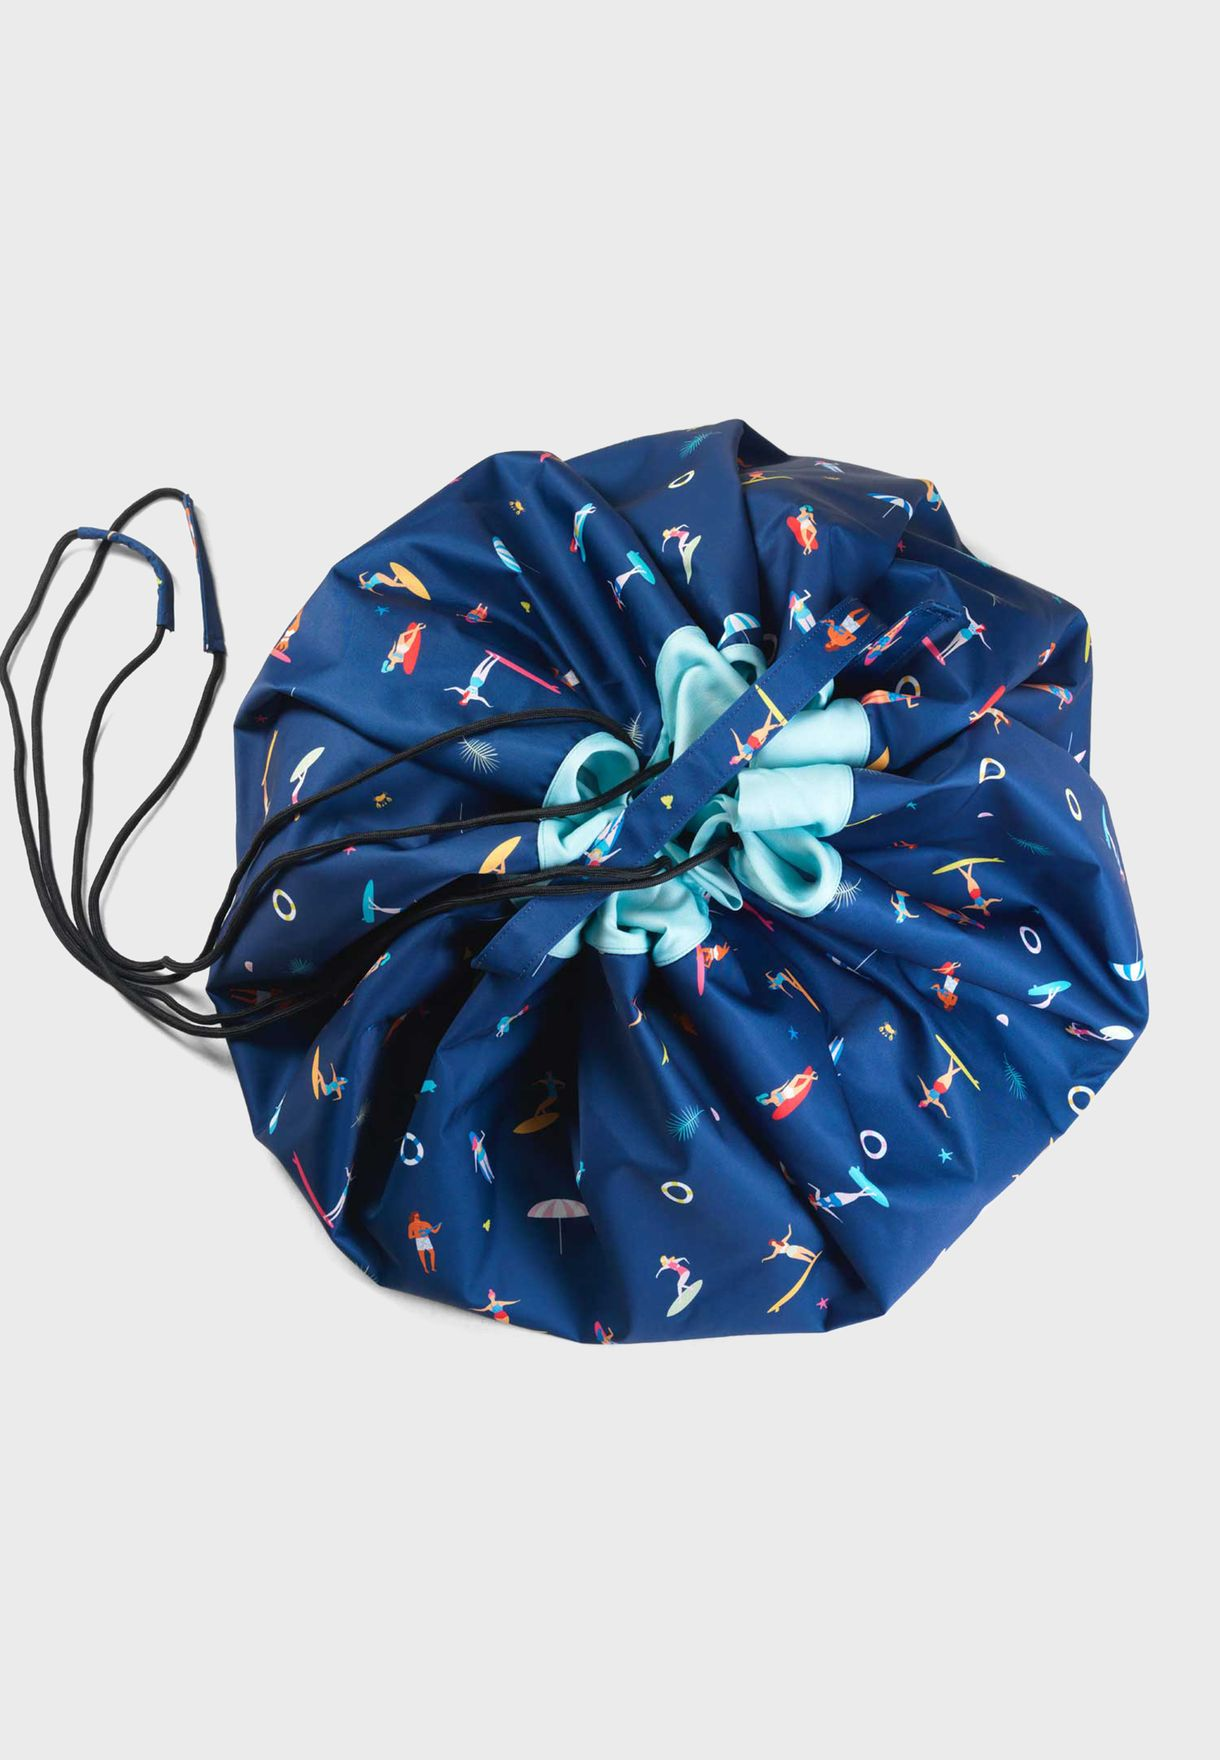 Outdoor Surf Playmat And Storage Bag